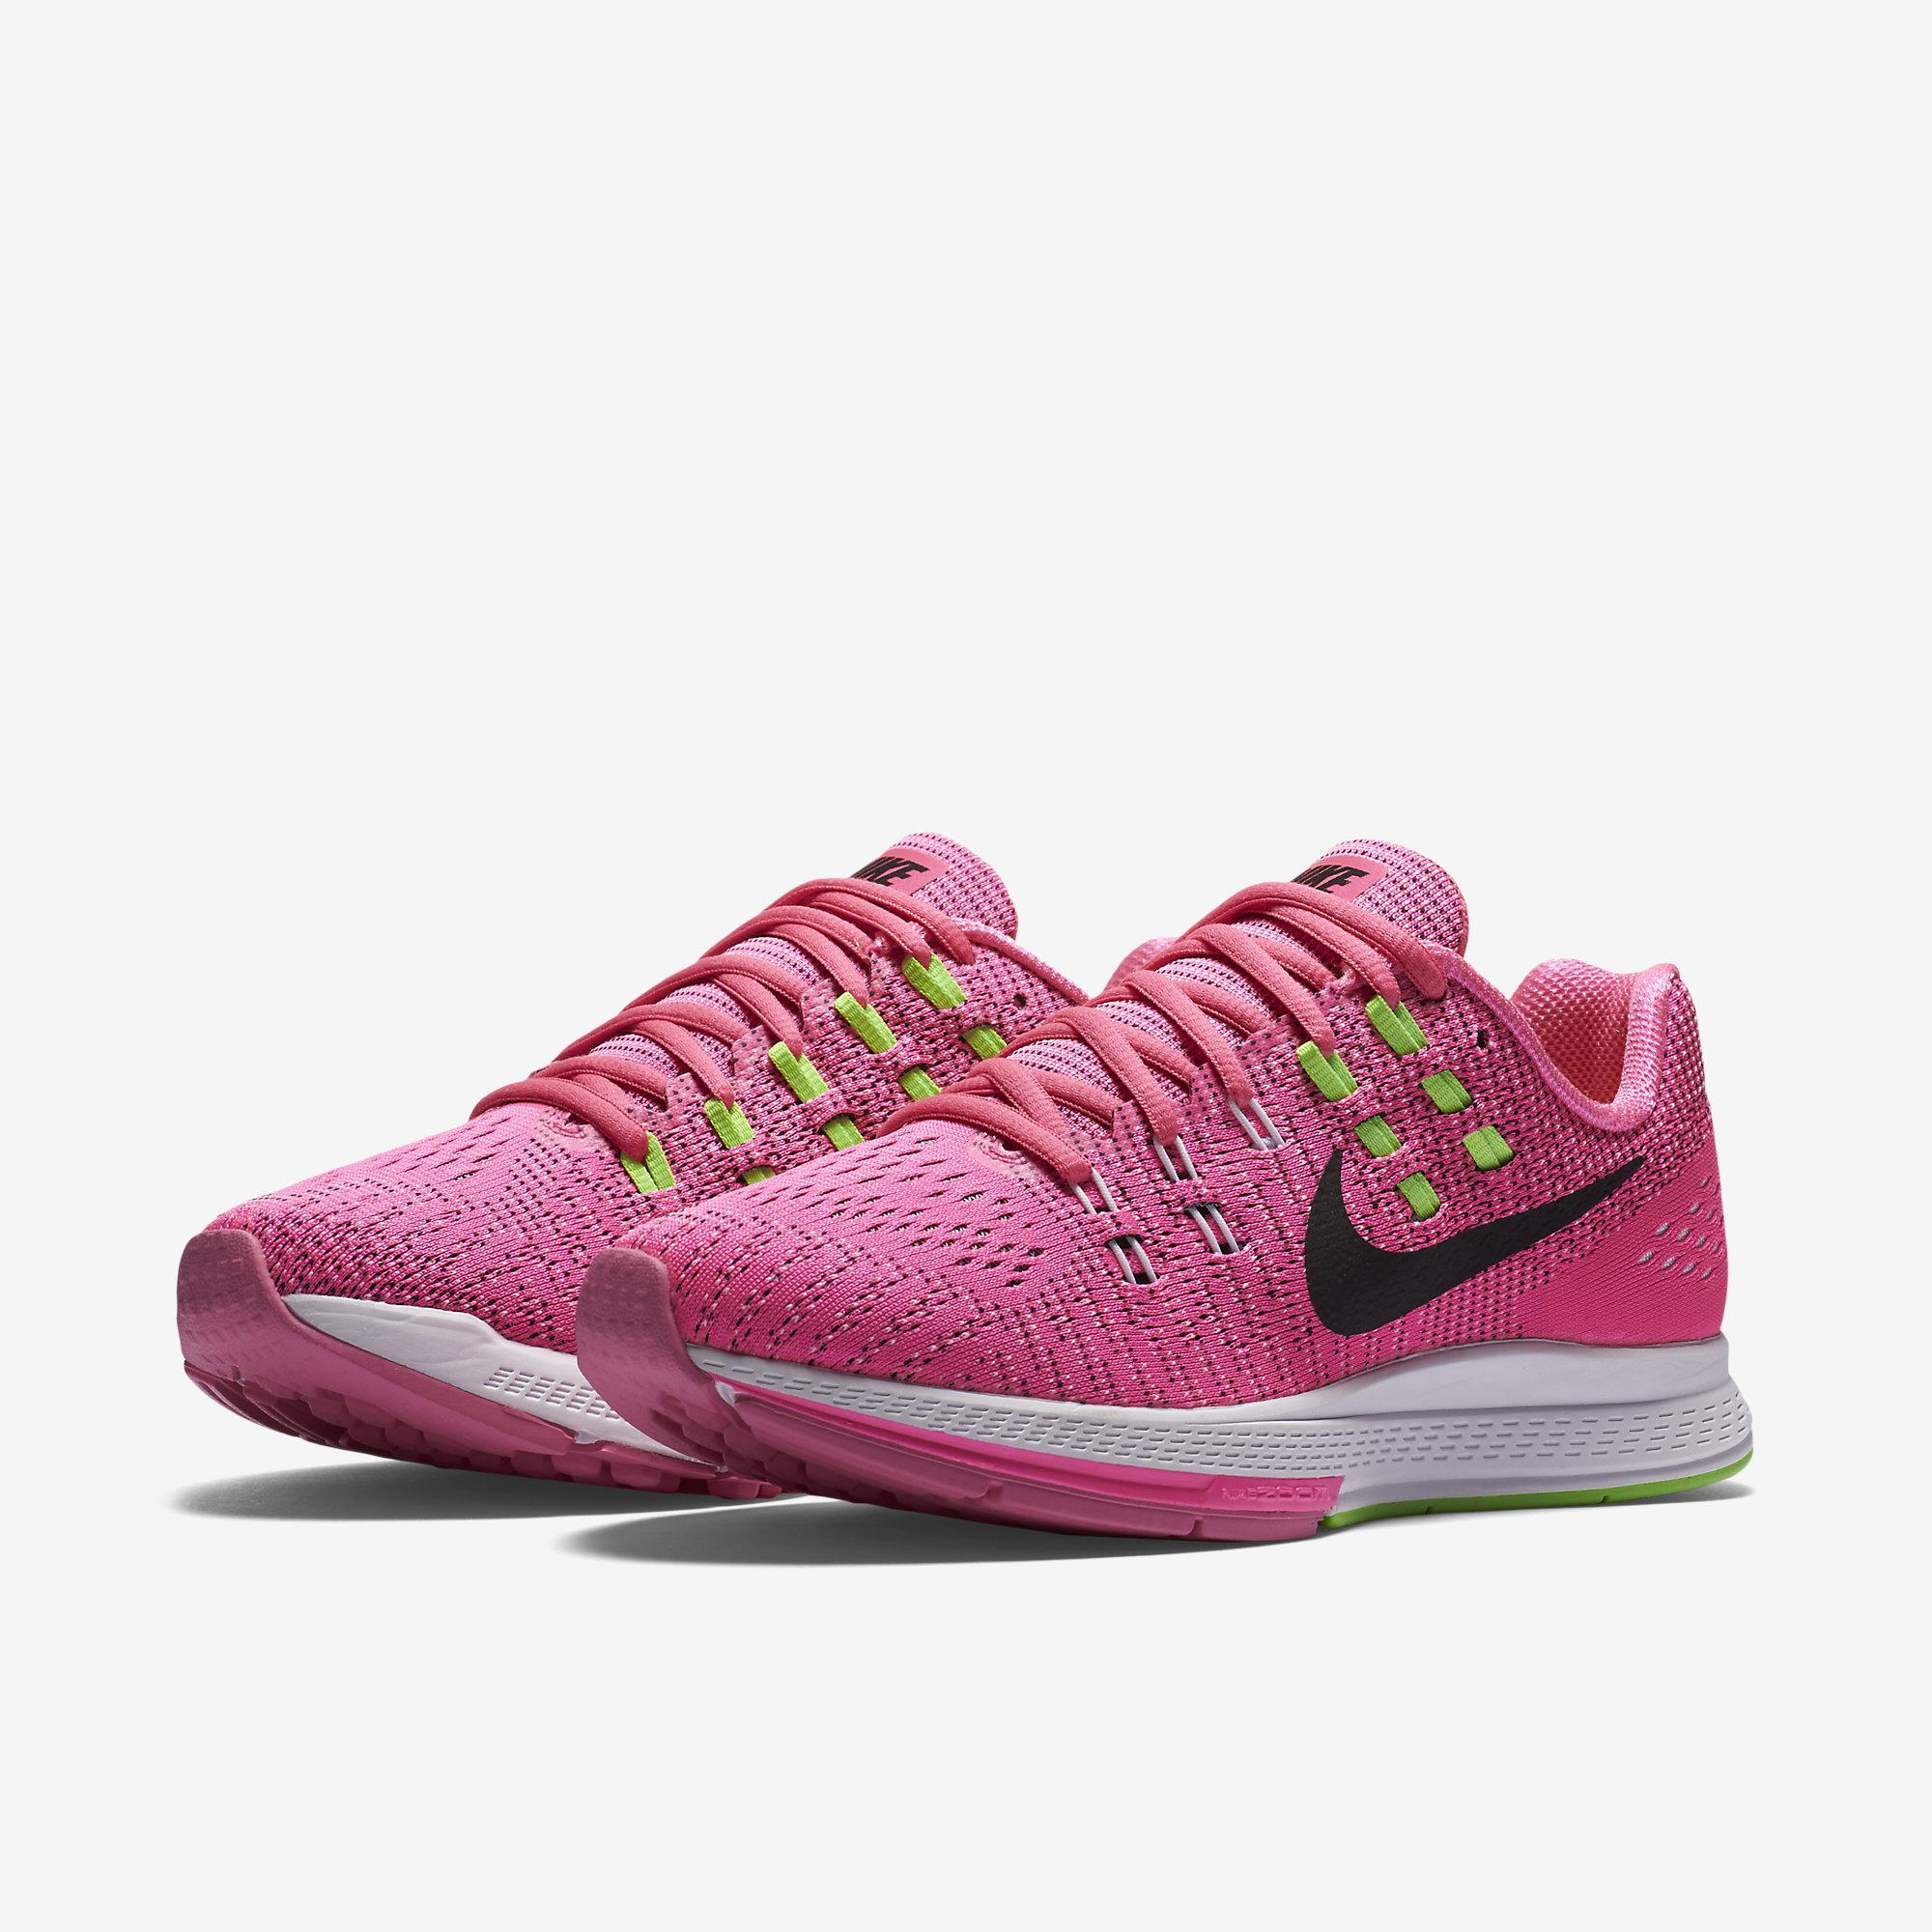 wholesale dealer e6c4d bcb1a Nike Womens Air Zoom Structure 19 Running Shoes - Pink